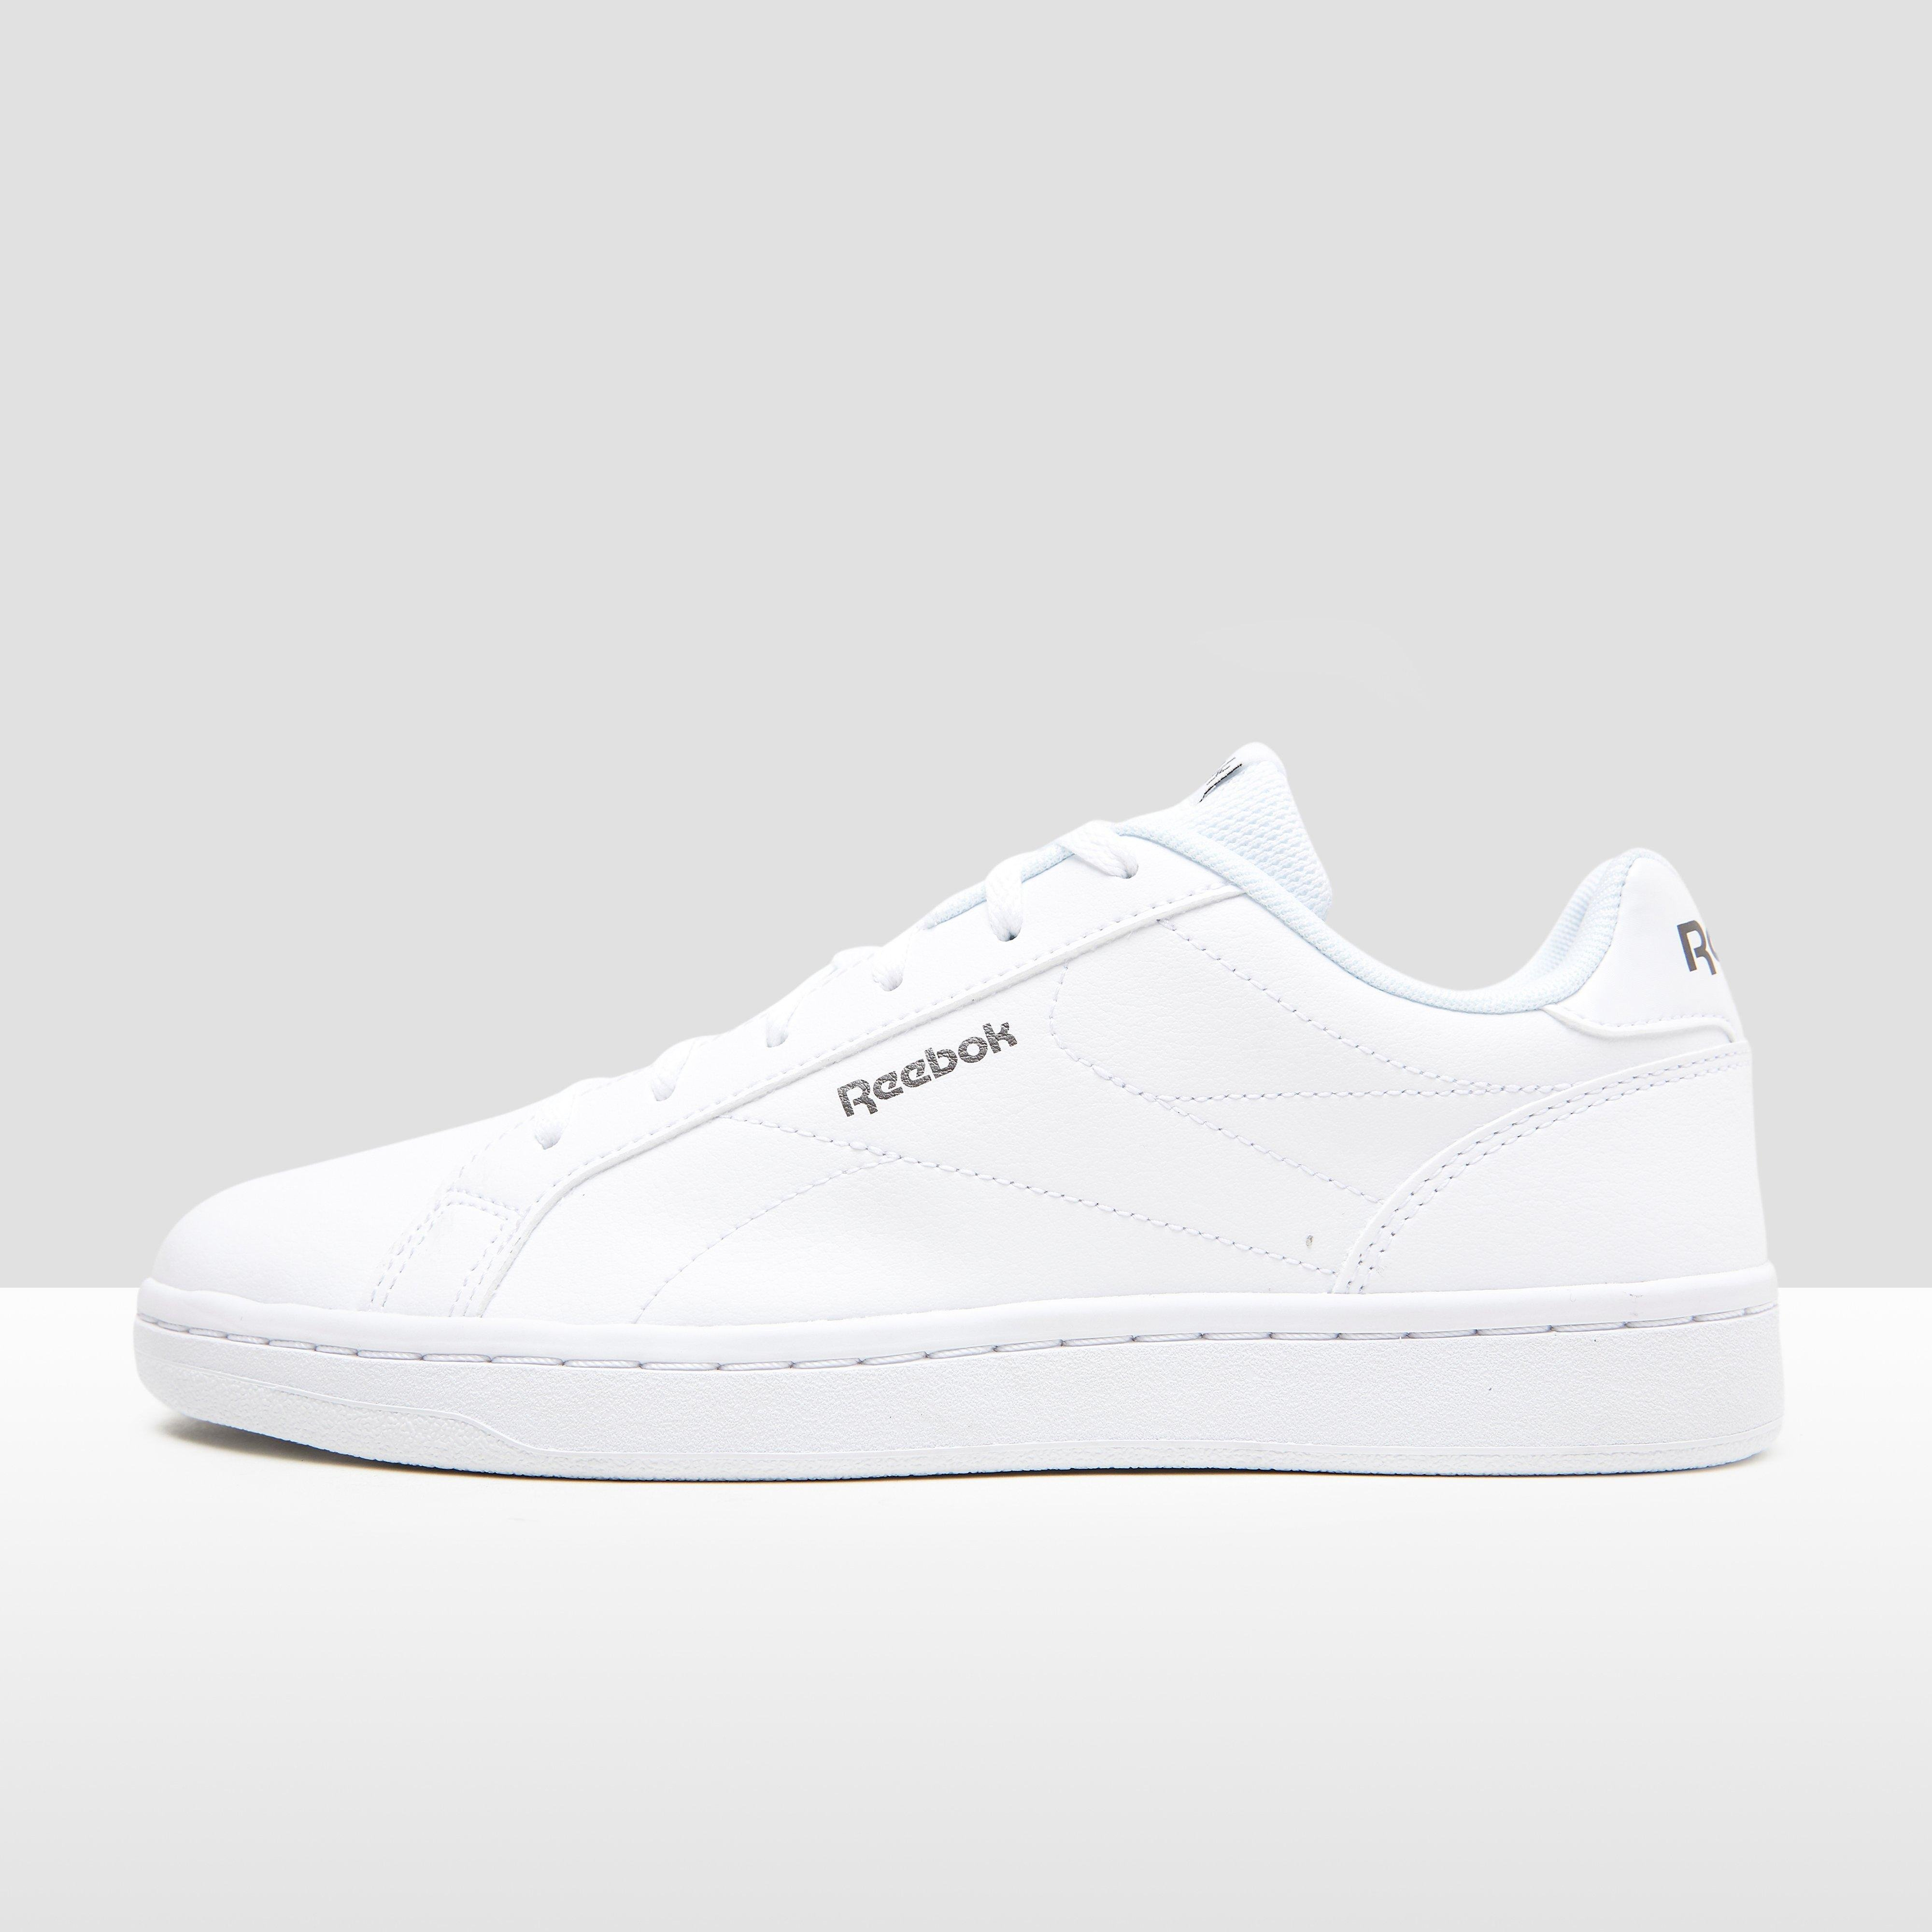 Chaussures Mâle Blanc Occasionnels Femmes Occasionnels q7ODYnM6